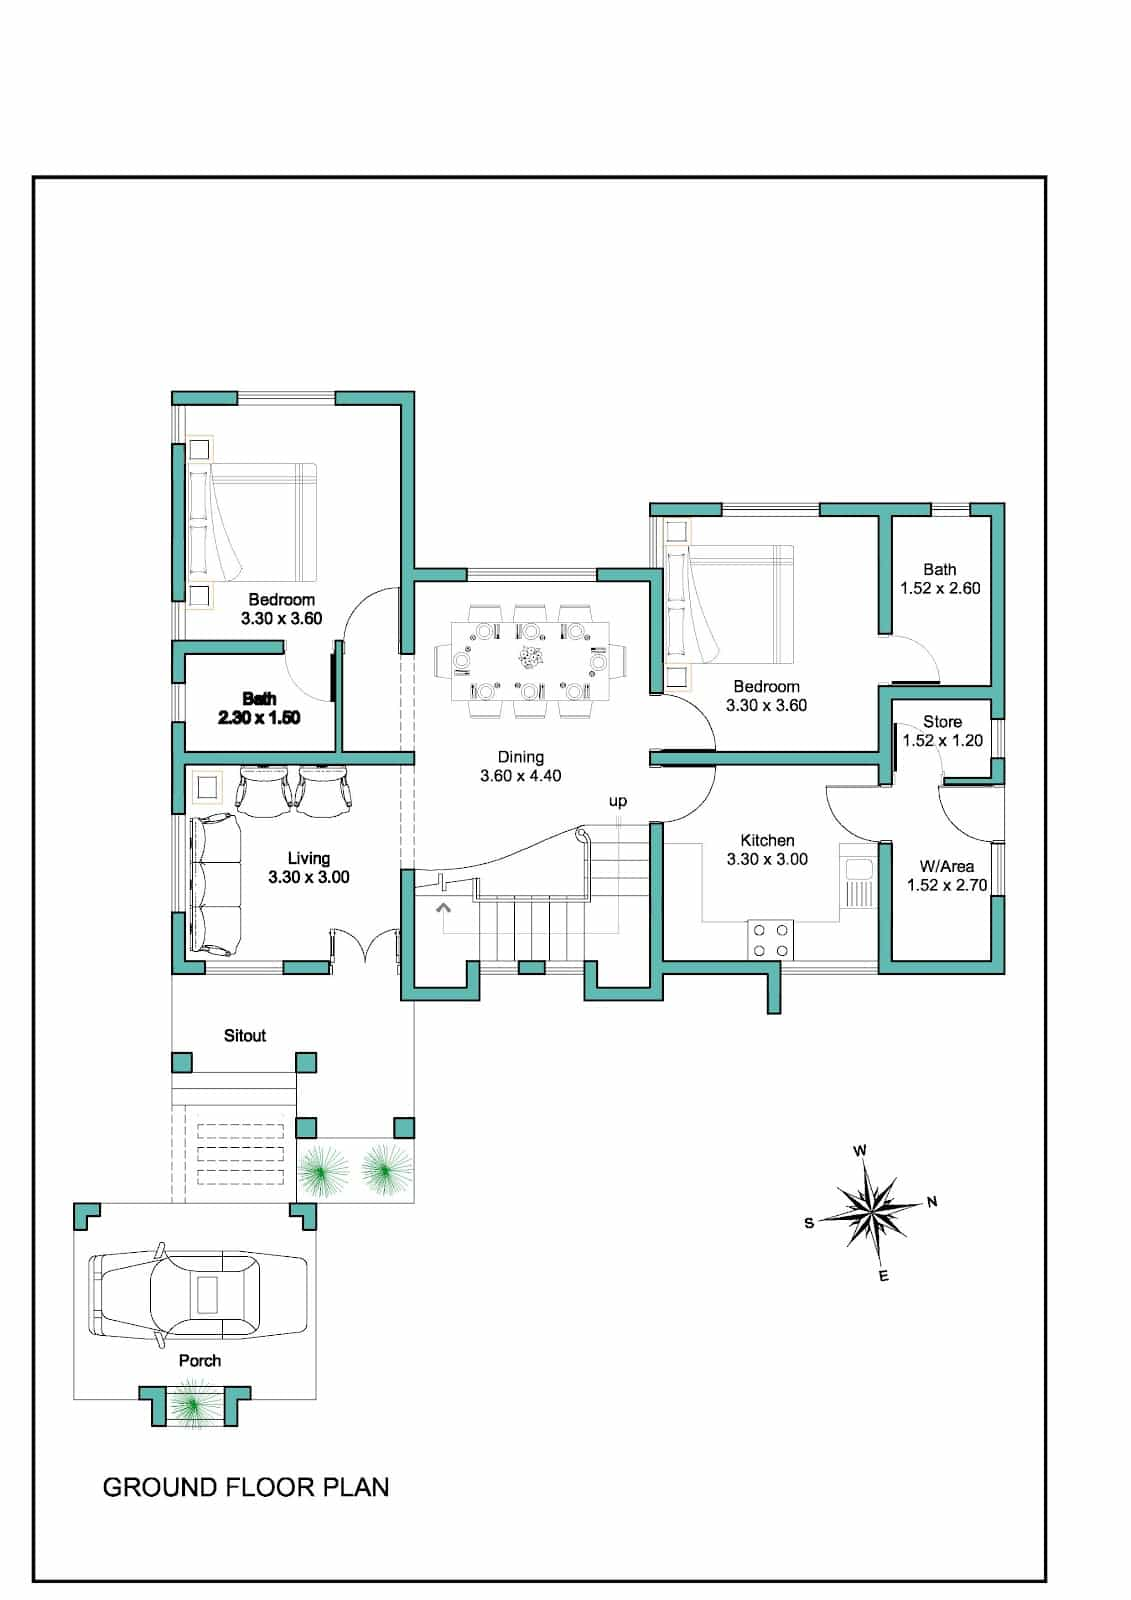 Contemporary Kerala House Plan at sq ftGround floor plan